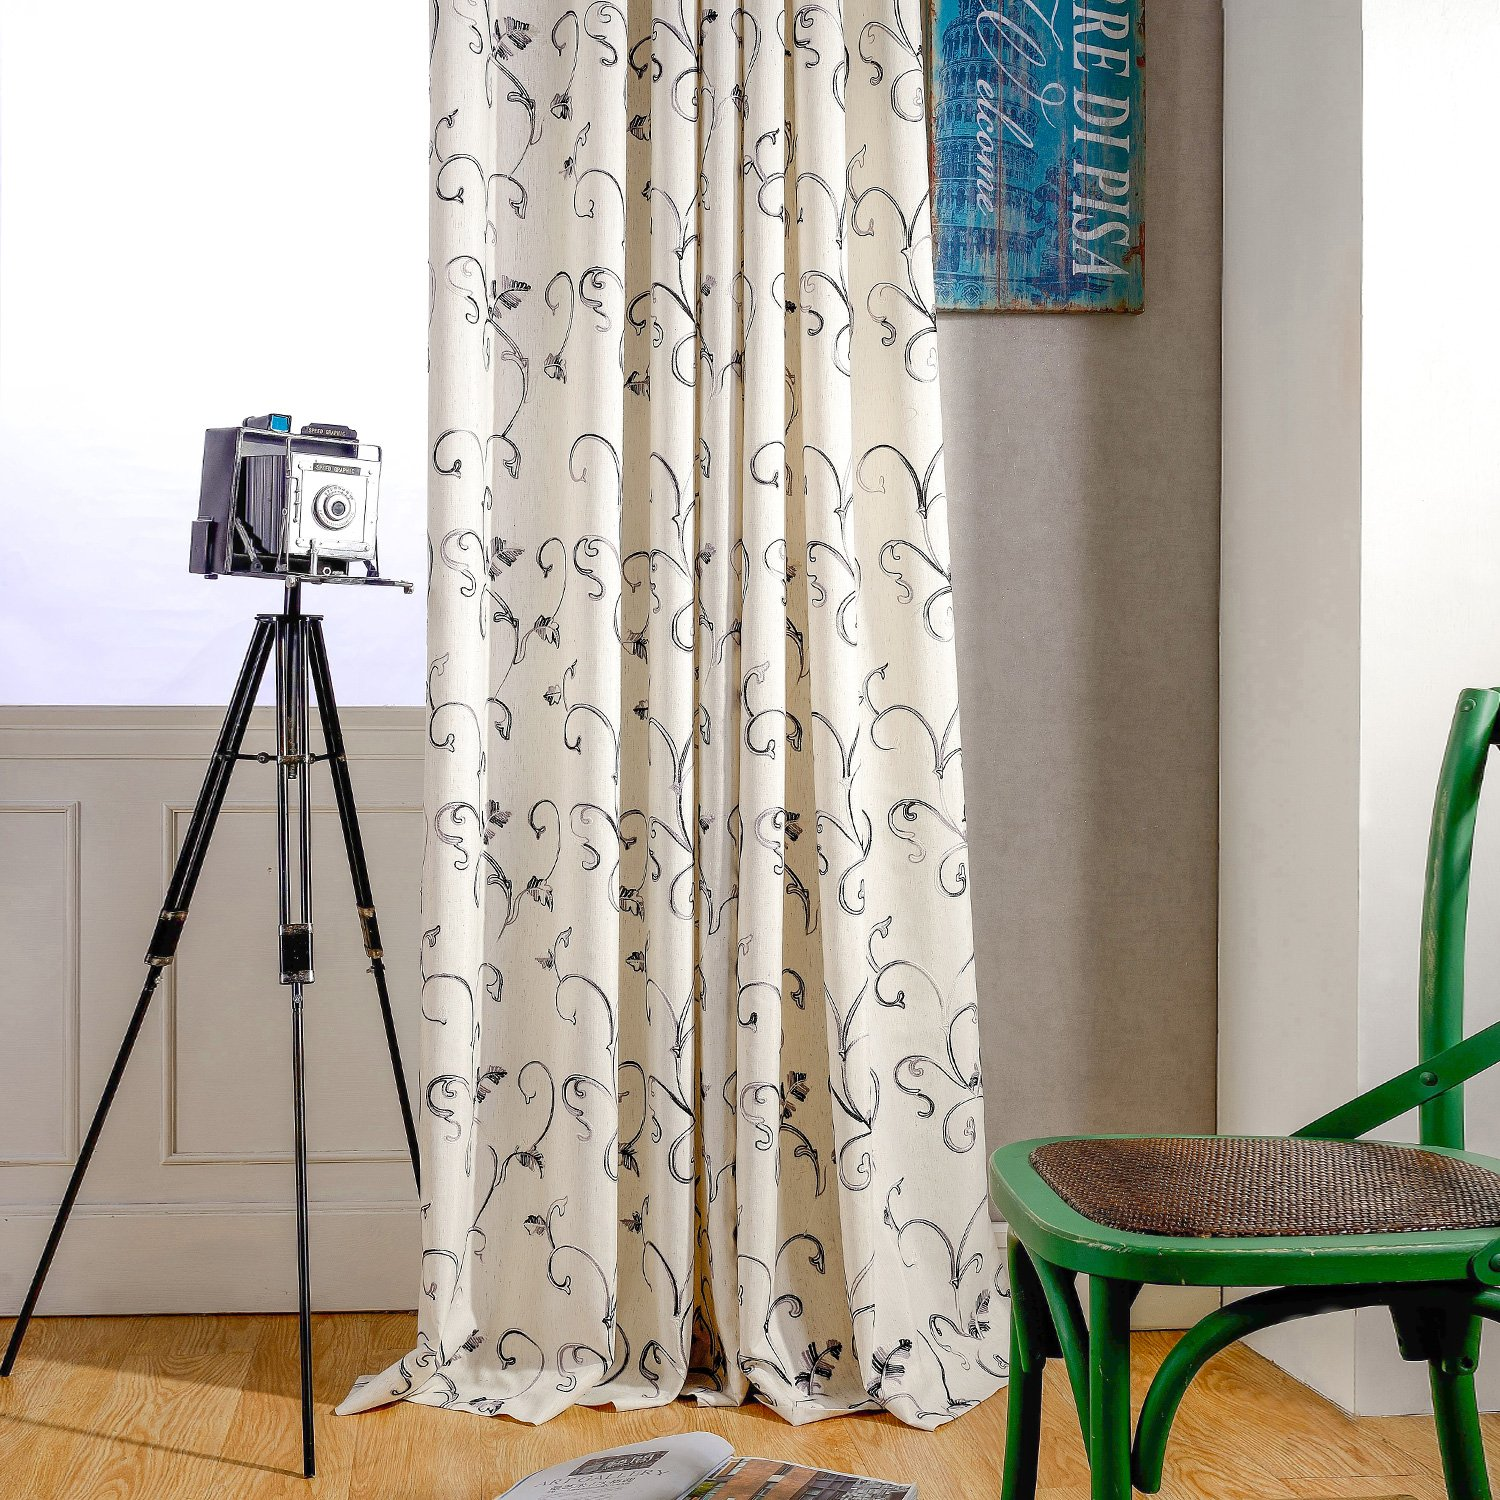 2 Panels VOGOL European Simple Floral Embroidered Curtains Blue Elegant Faux Linen Curtain for Living Room 52x96 Inch Top Grommet YouYee 005CLQH087C1S5296